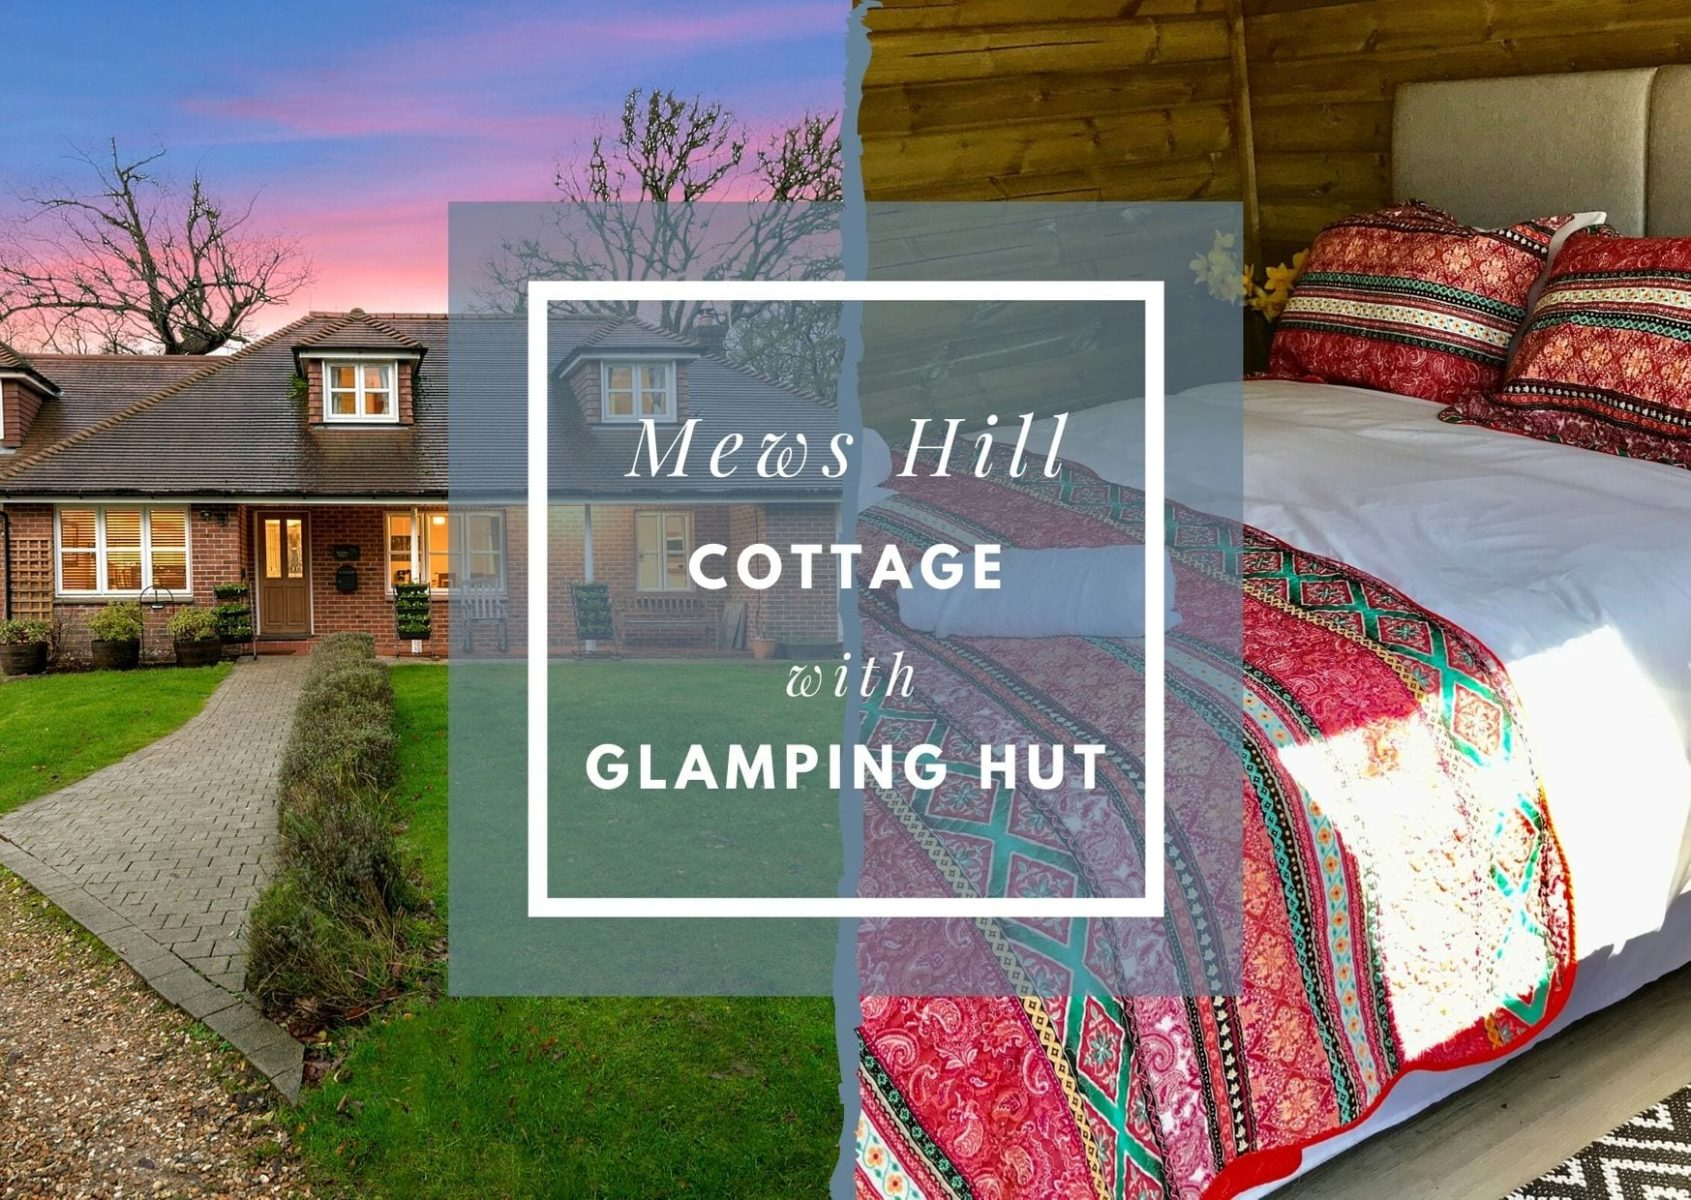 Mews Hill with Glamping Hut cover